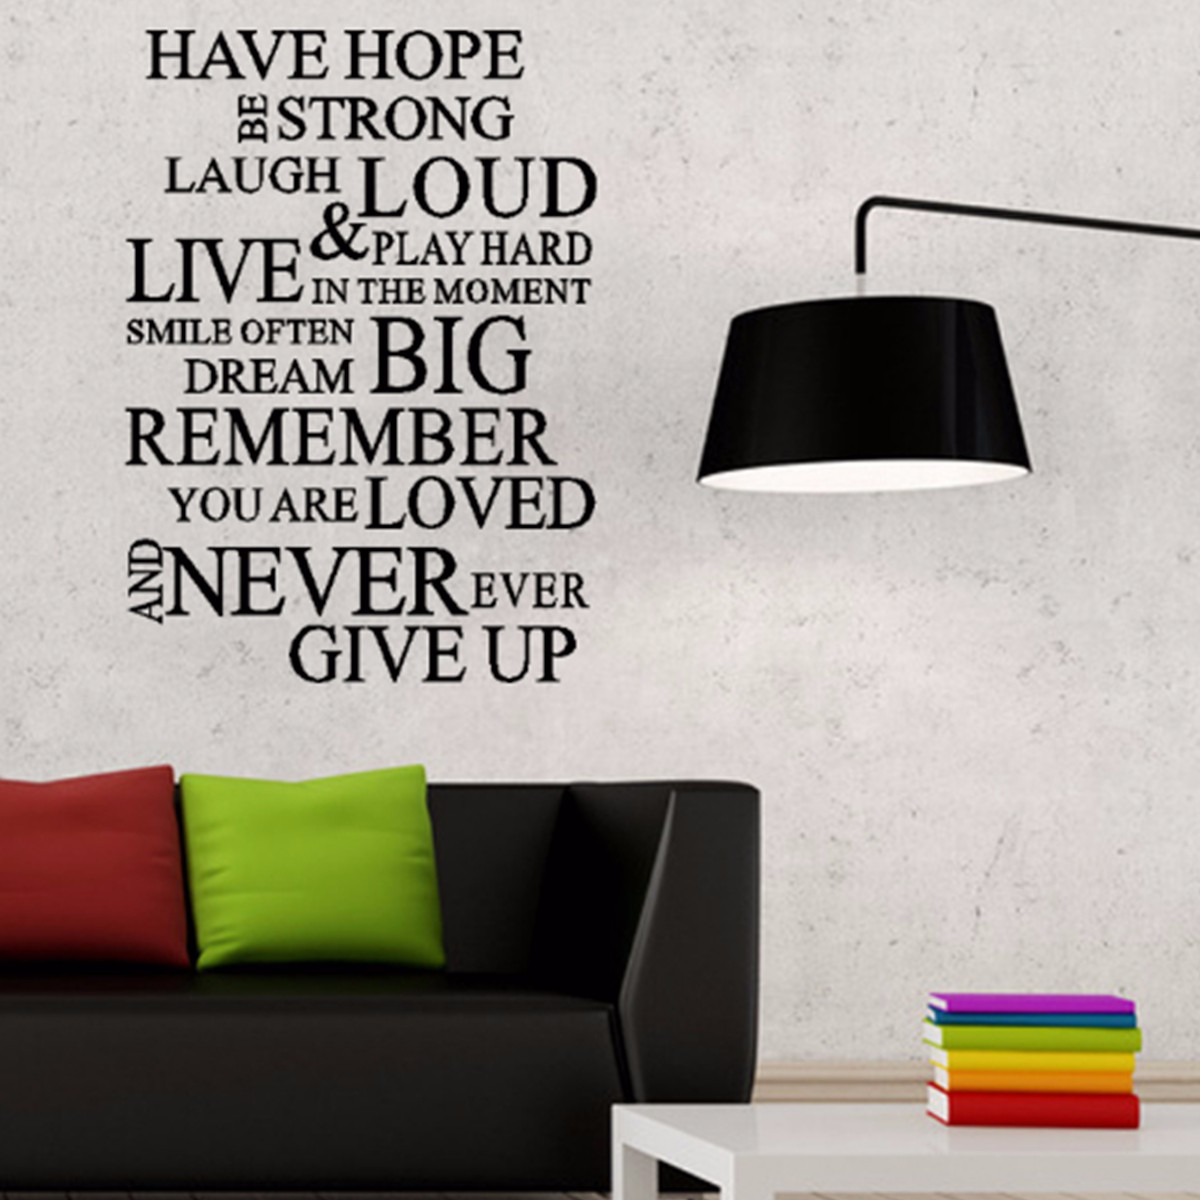 Inspirational Have Hope Wall Art Quote Stickers Vinyl Decal Removable Mural DIY